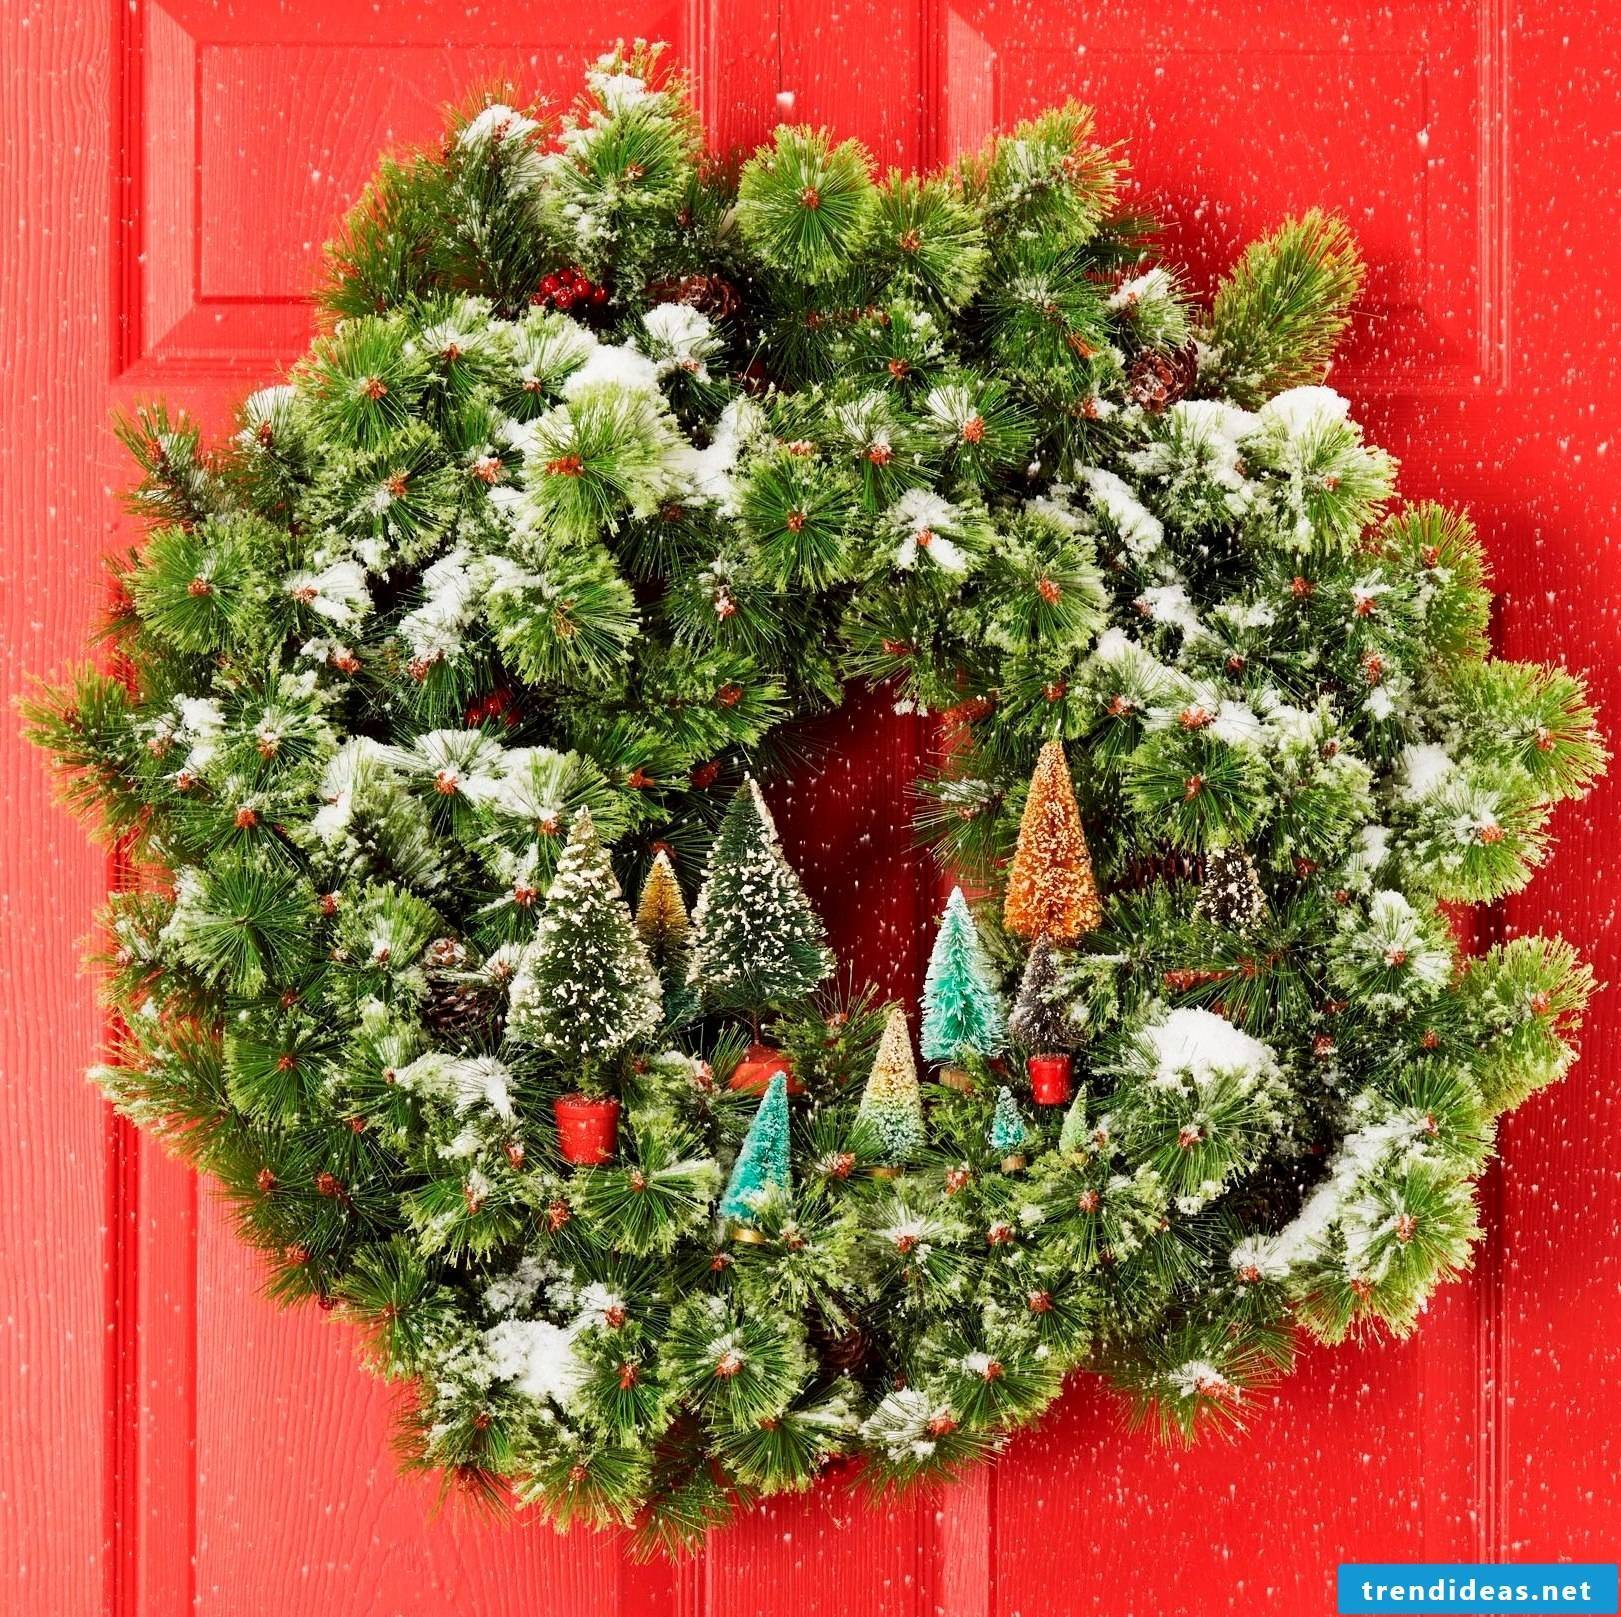 Beautiful door wreath with snow and fir trees